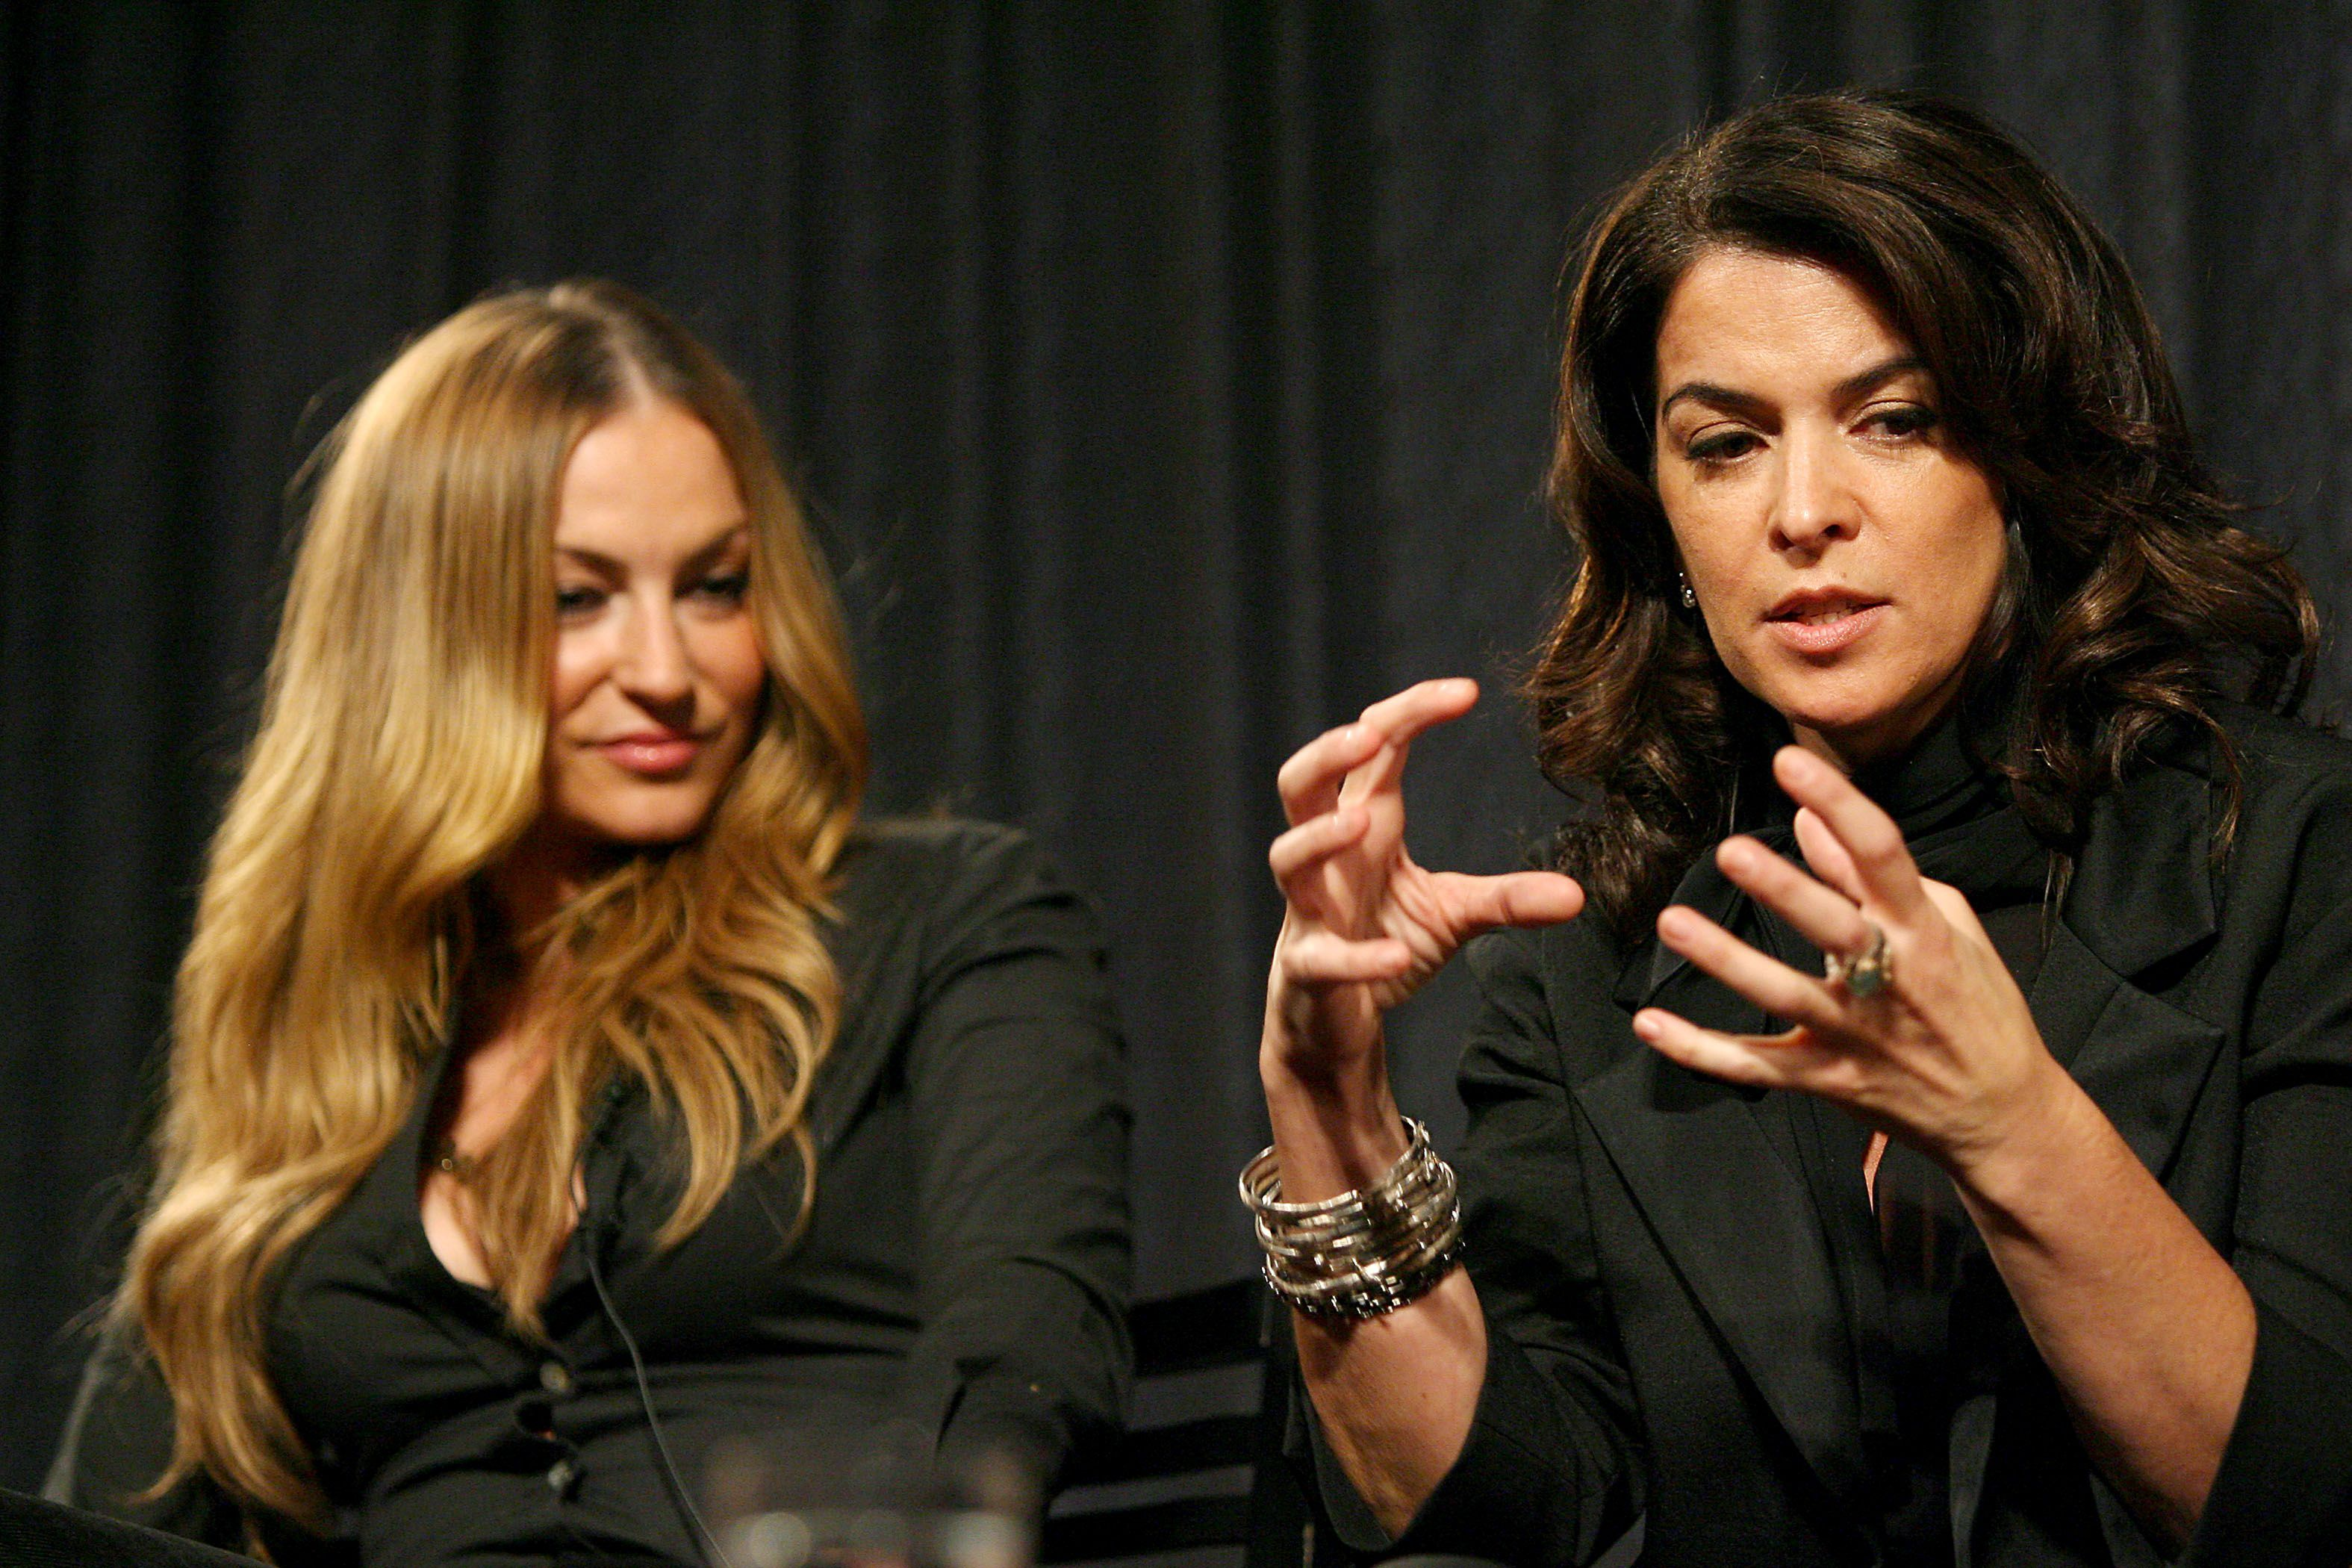 Annabella Sciorra Is Disappointed That Happy Harvey Weinstein Can Return to His 'Hunting Ground' After Posting Bail